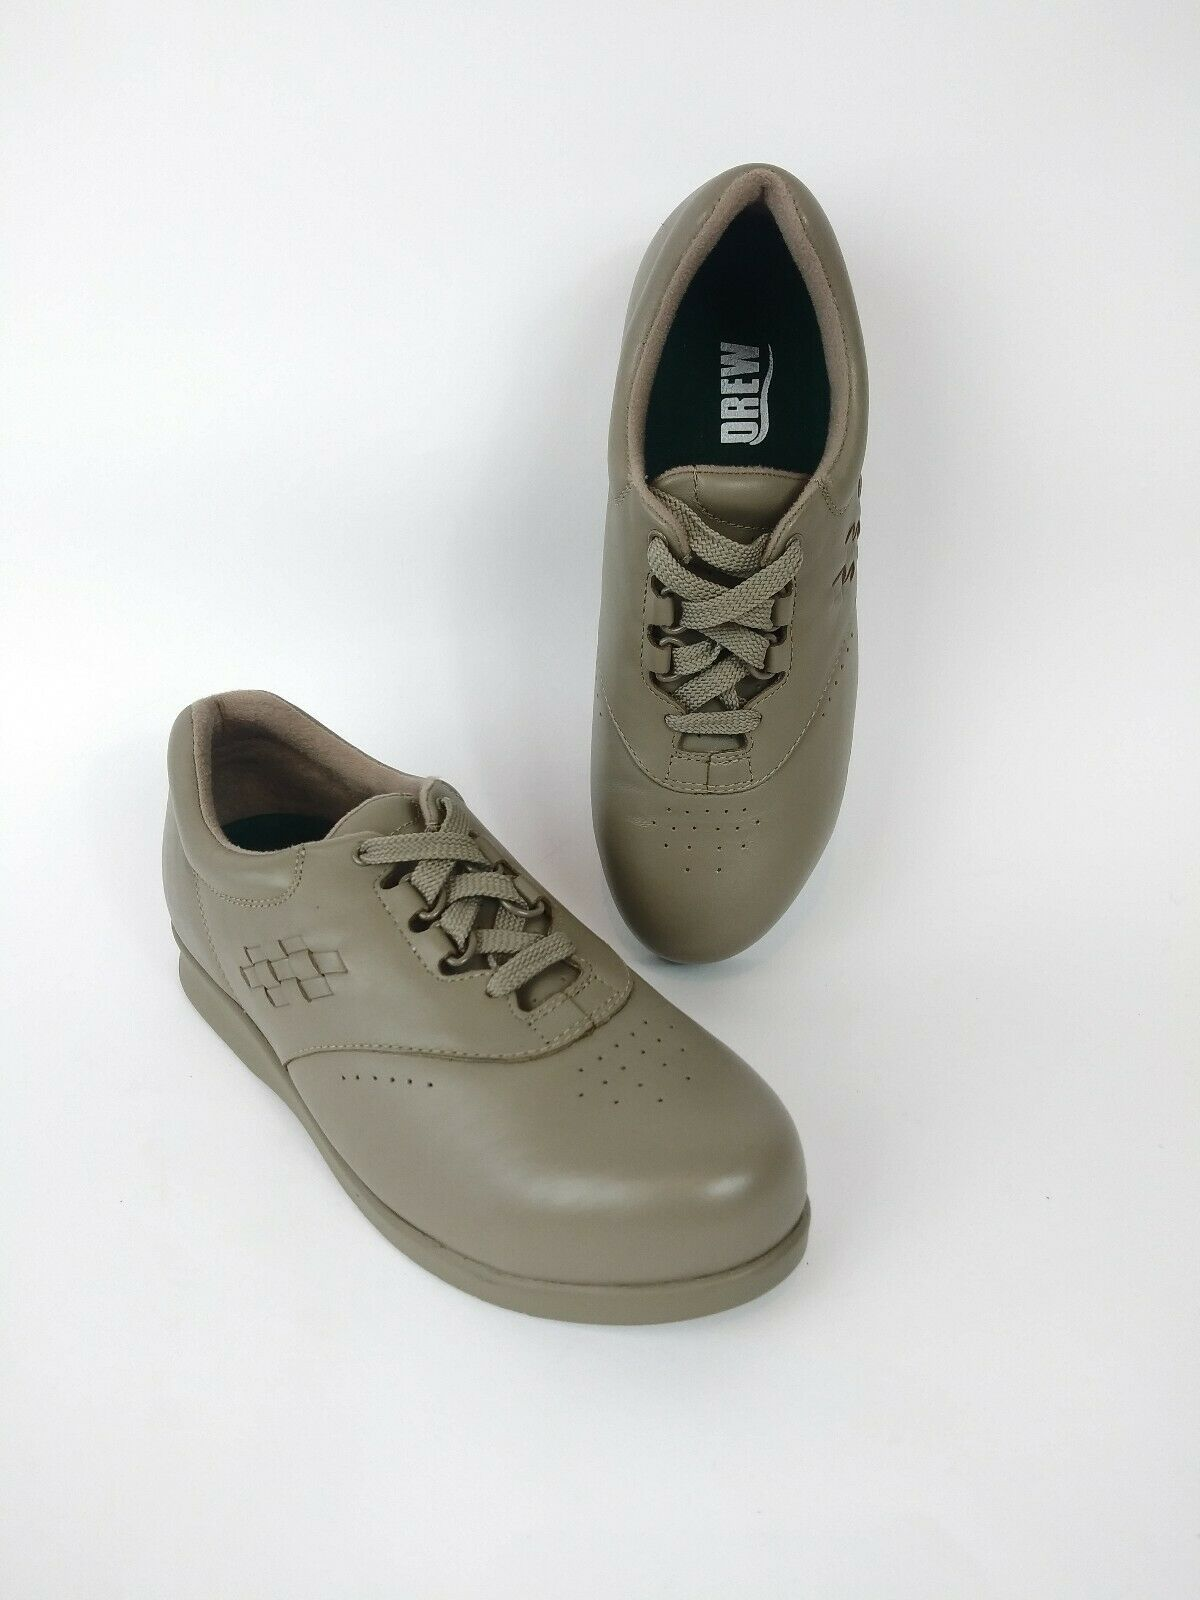 Pin on Womens Diabetic Shoes